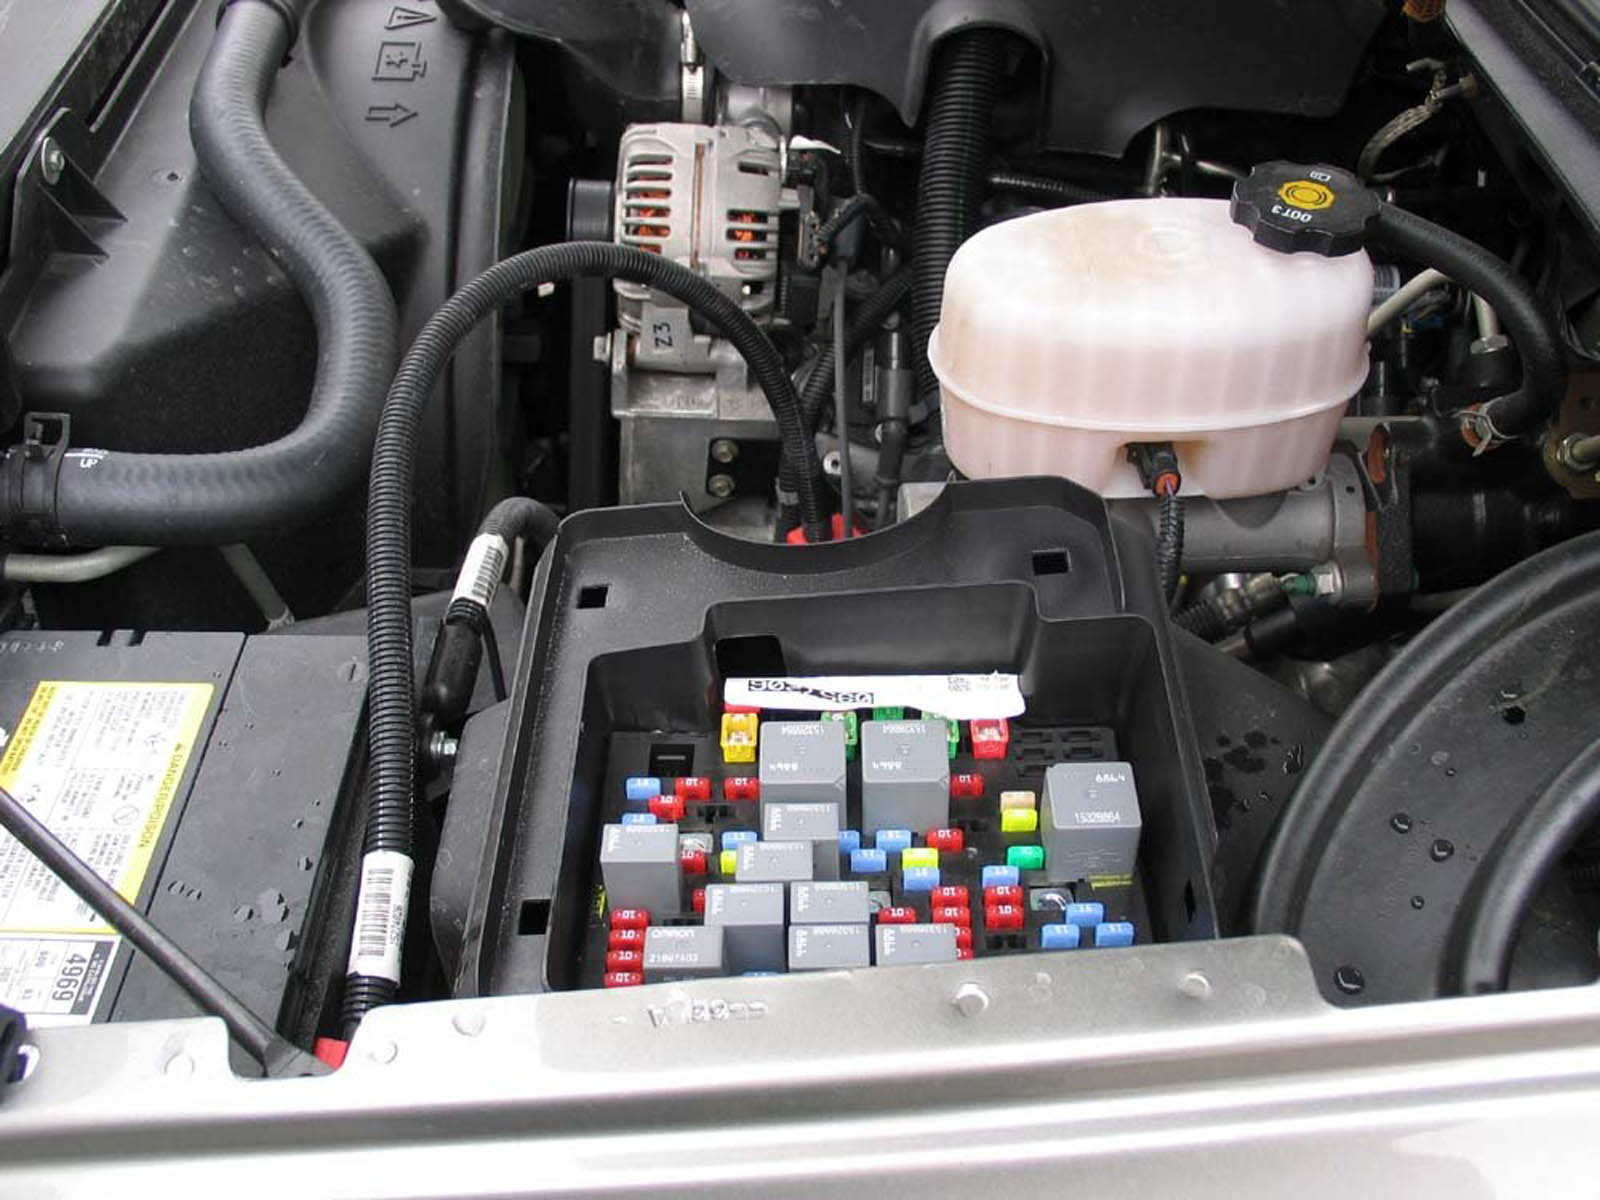 chevrolet silverado gmt800 1999 2006 fuse box diagram chevroletforum rh chevroletforum com